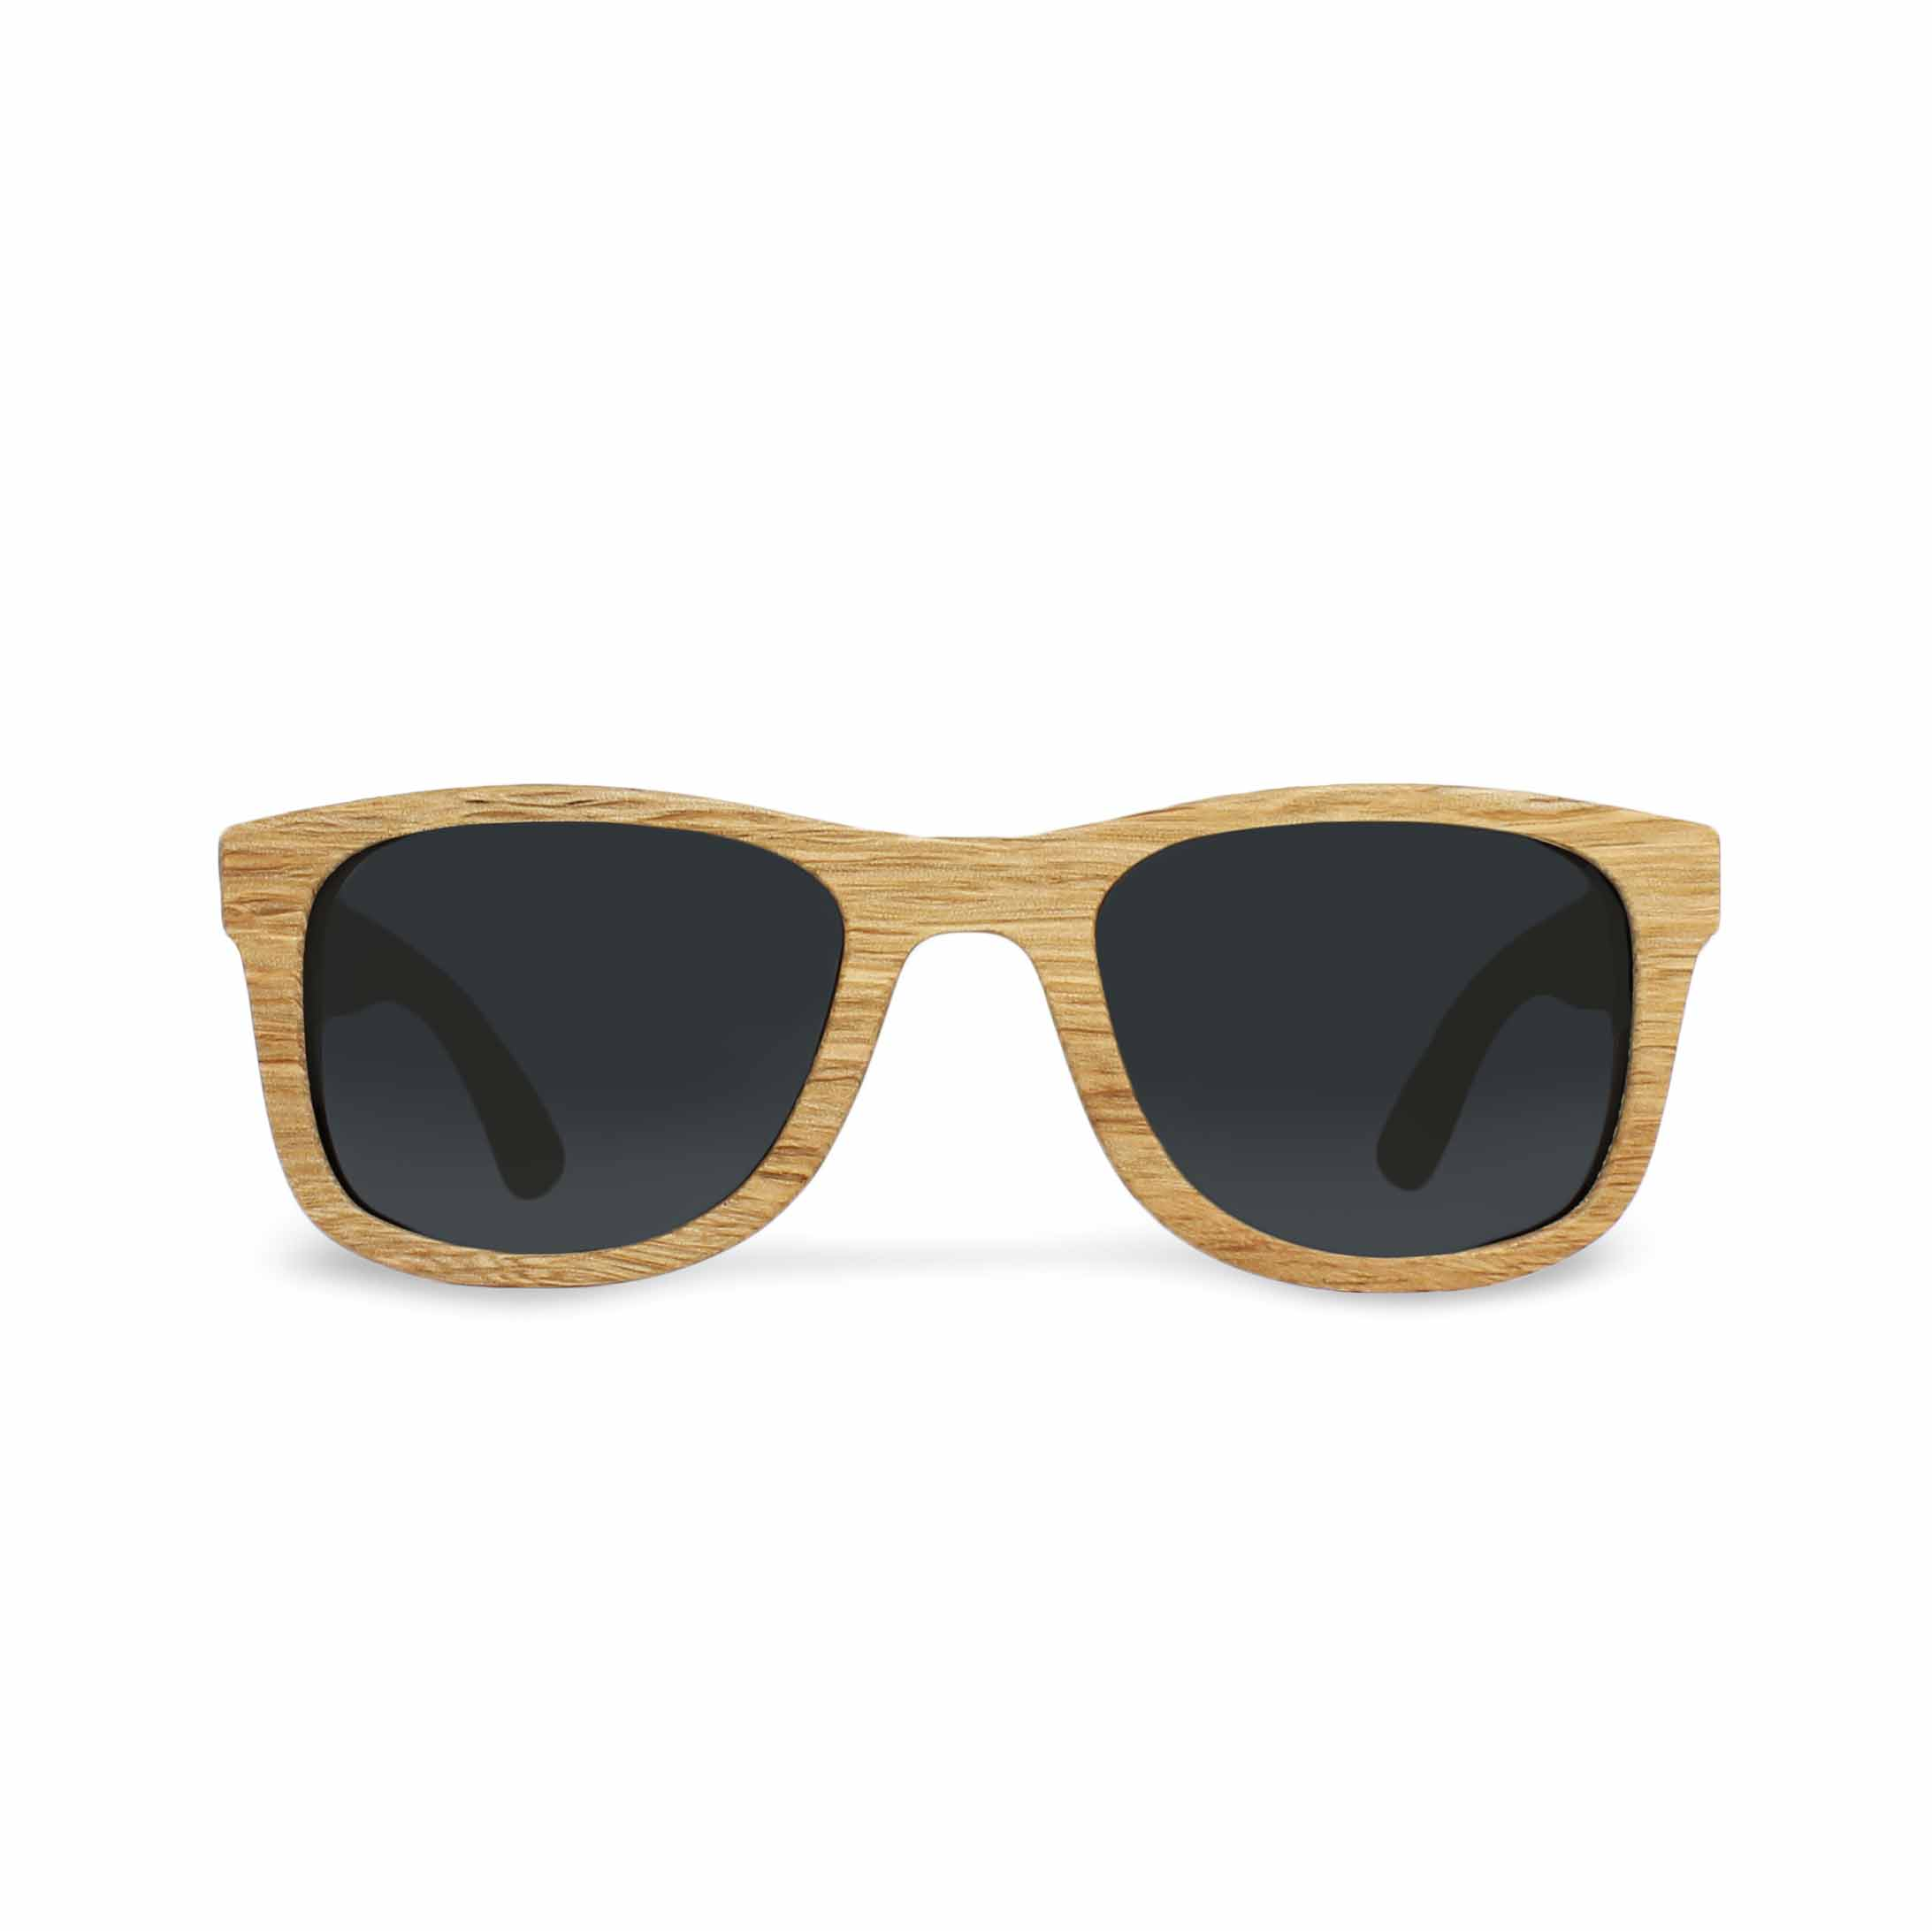 caviuno sunglasses time for wood